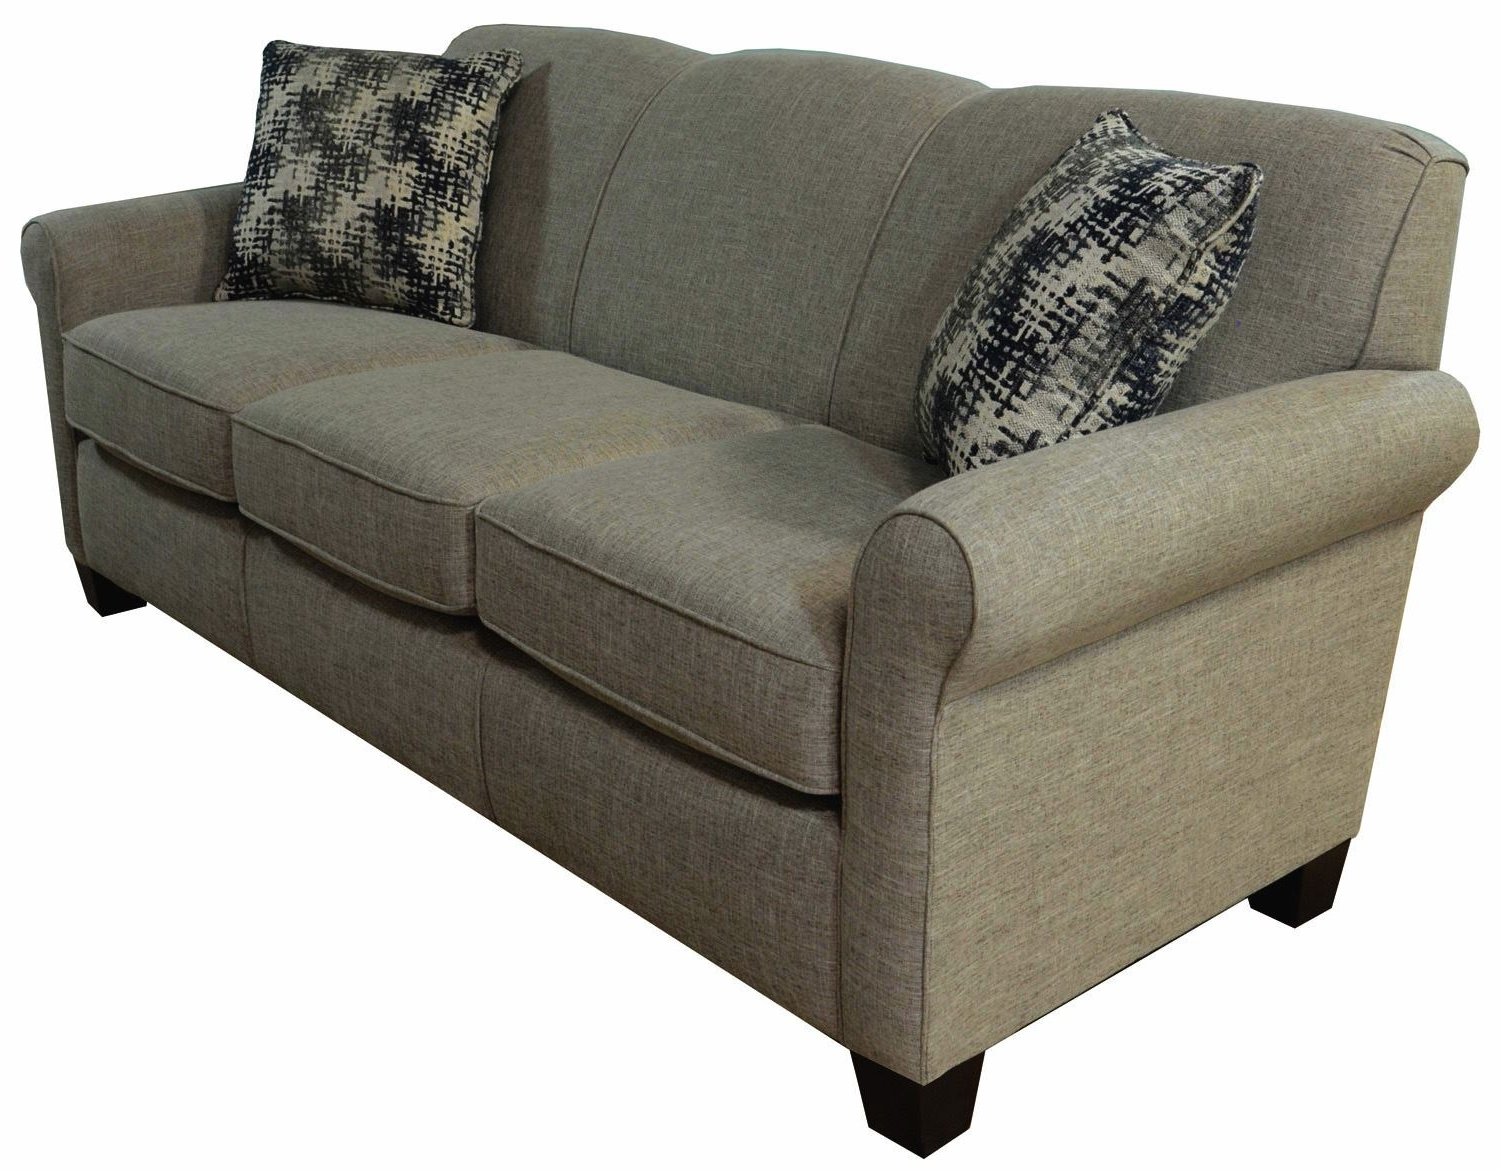 Newport Sofa, Frontroom Express – Frontroom Furnishings Inside Favorite Newport Sofas (View 13 of 20)